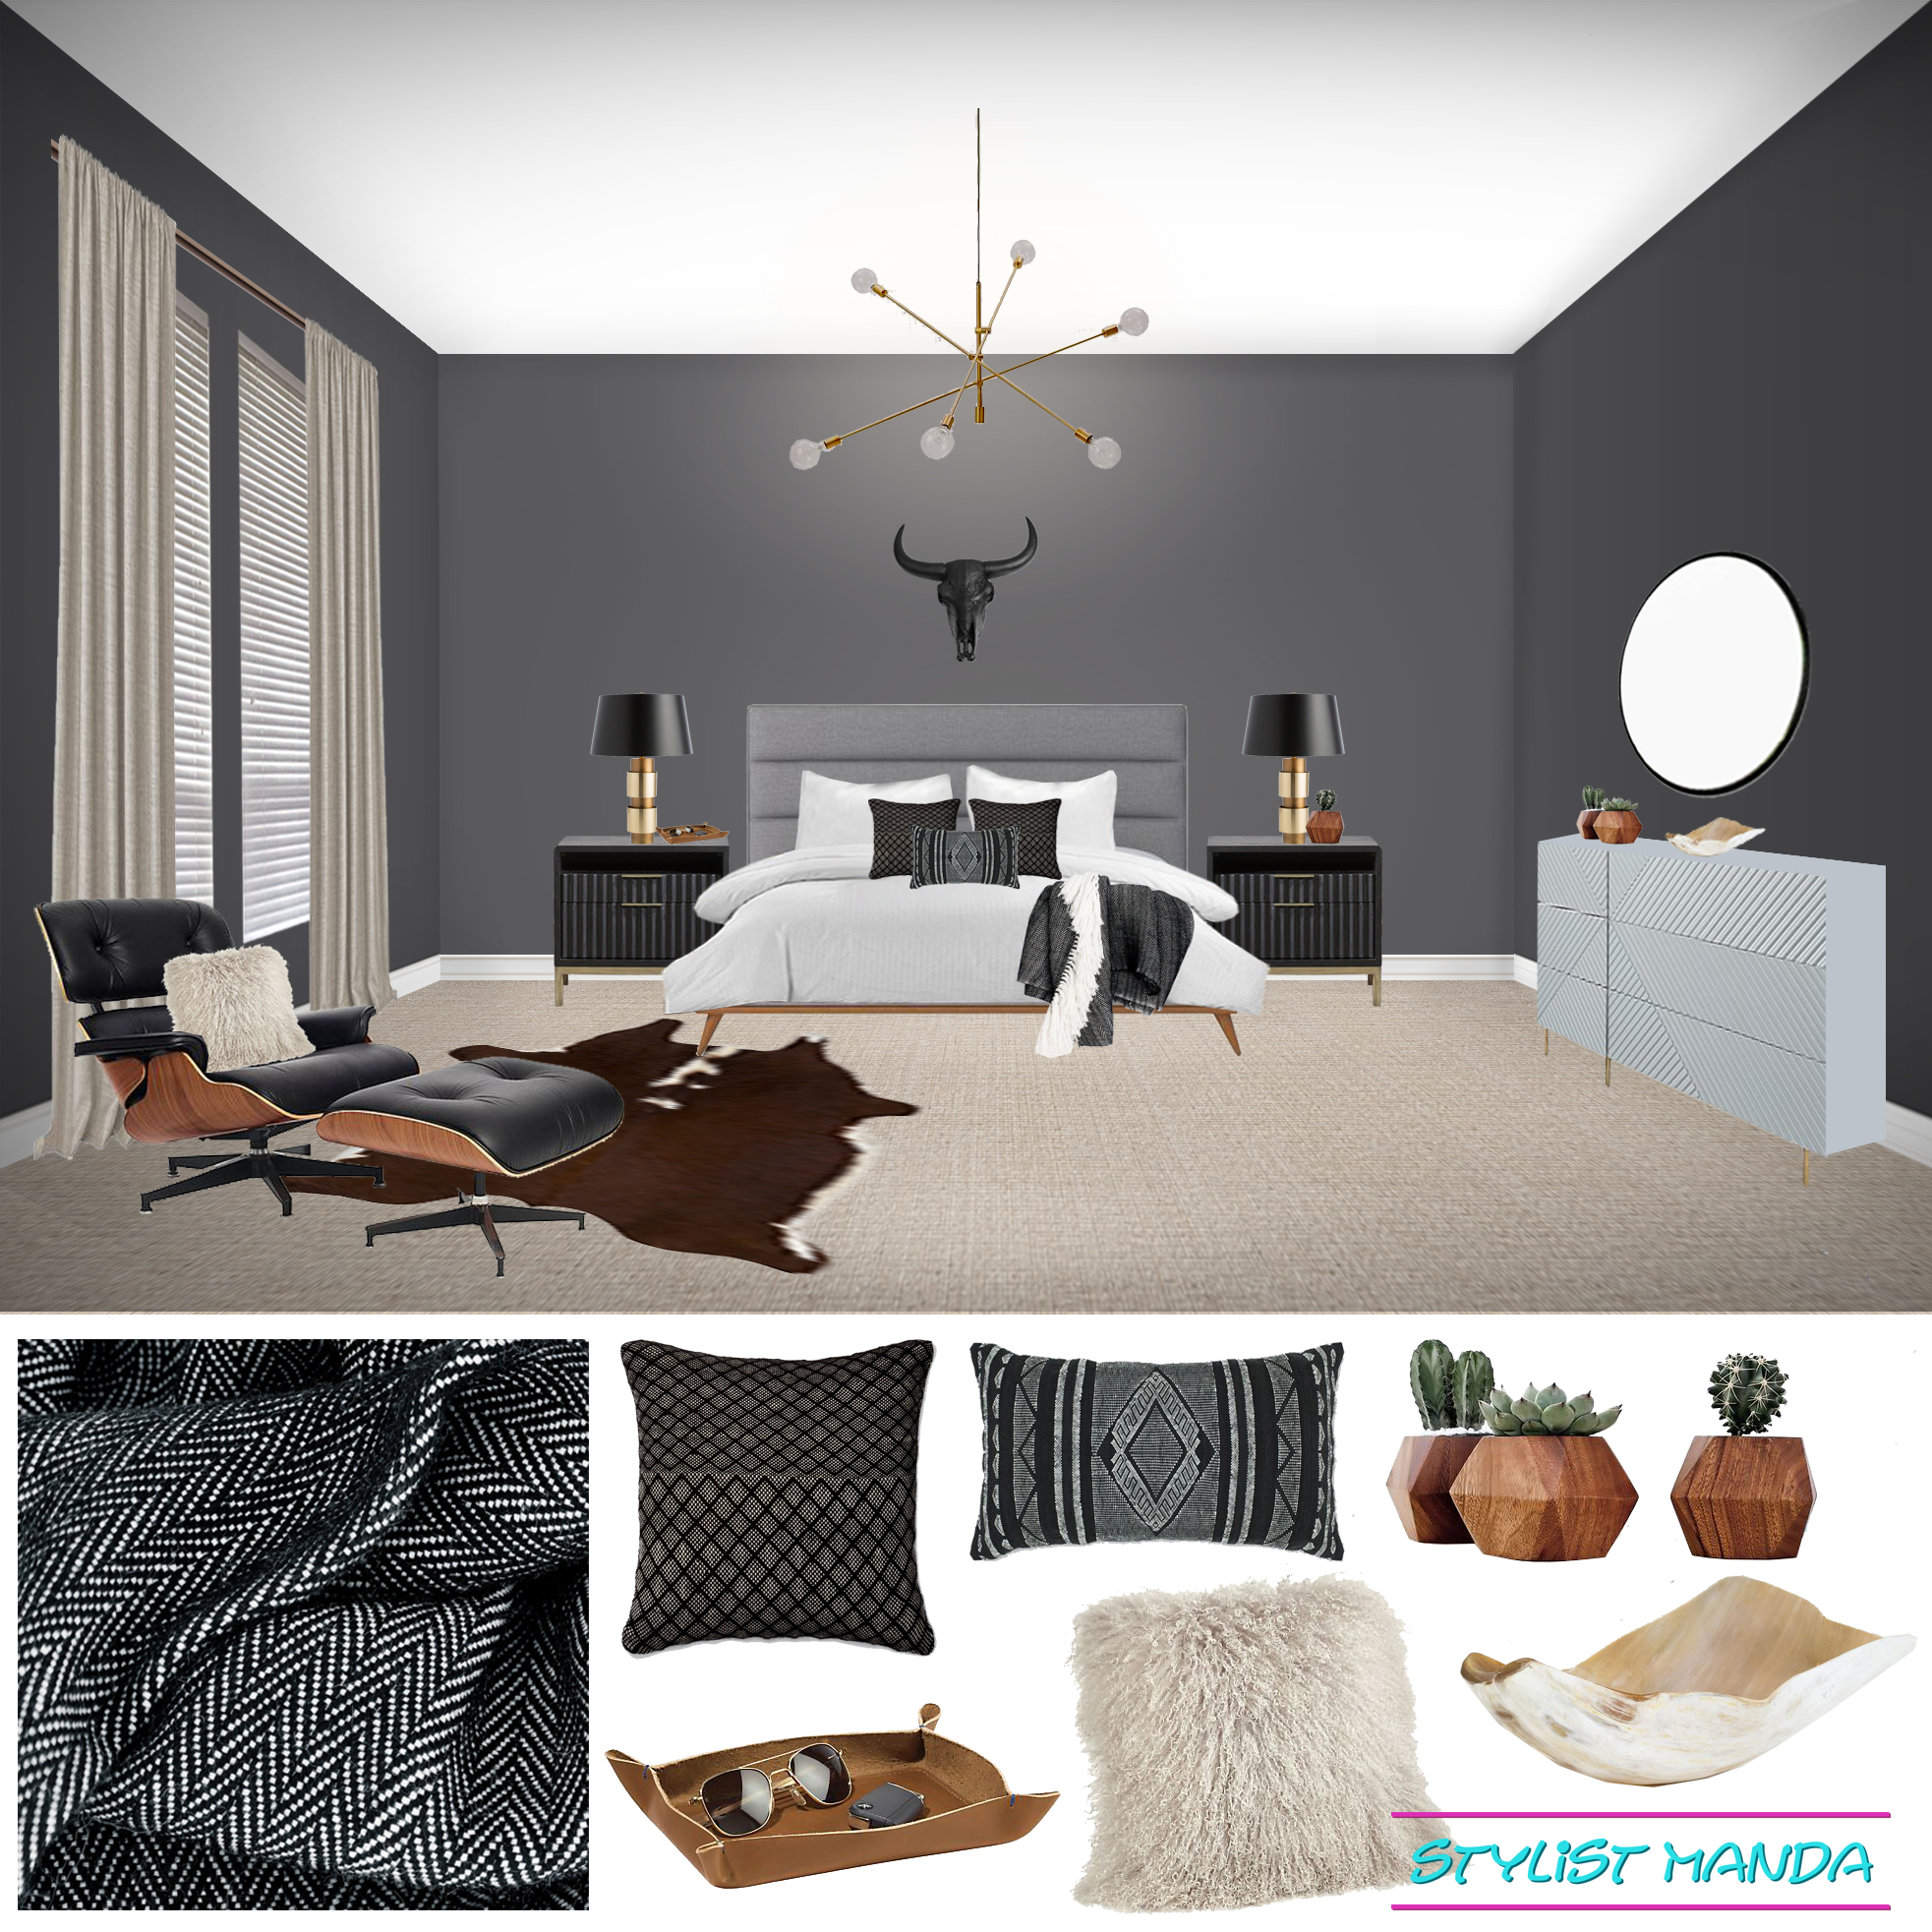 A Manly Bedroom E Design Stylist Manda